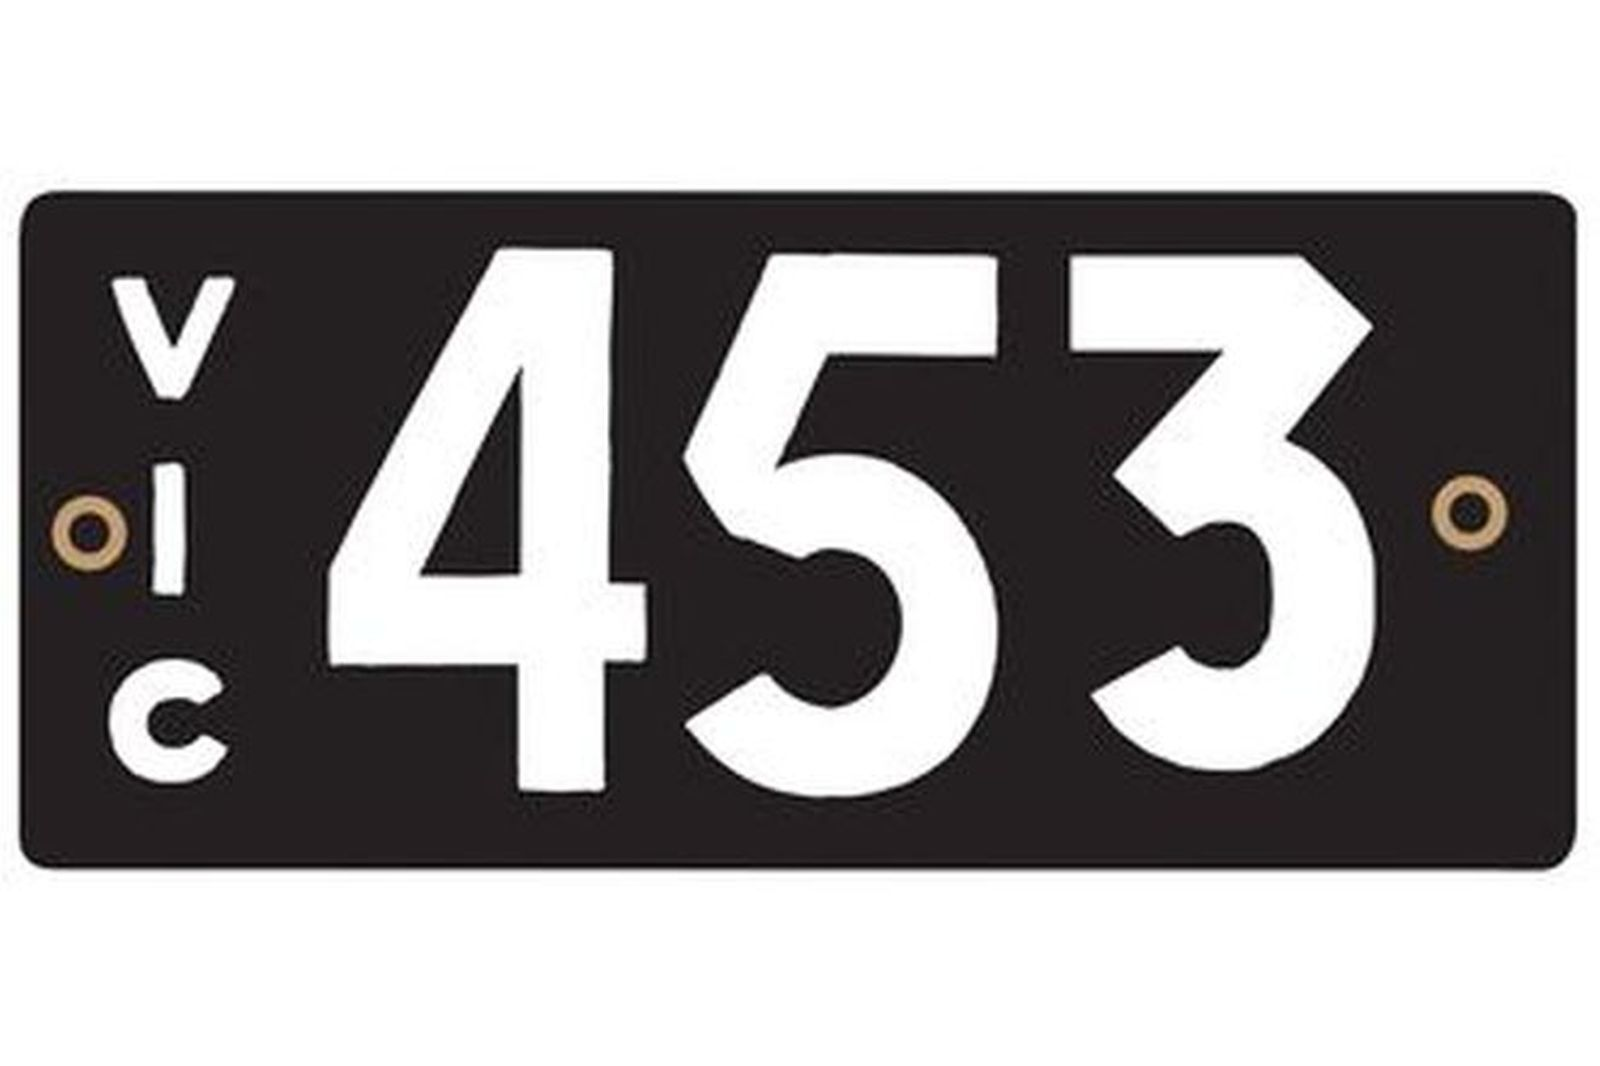 Number Plates - Victorian Numerical Number Plates '453'